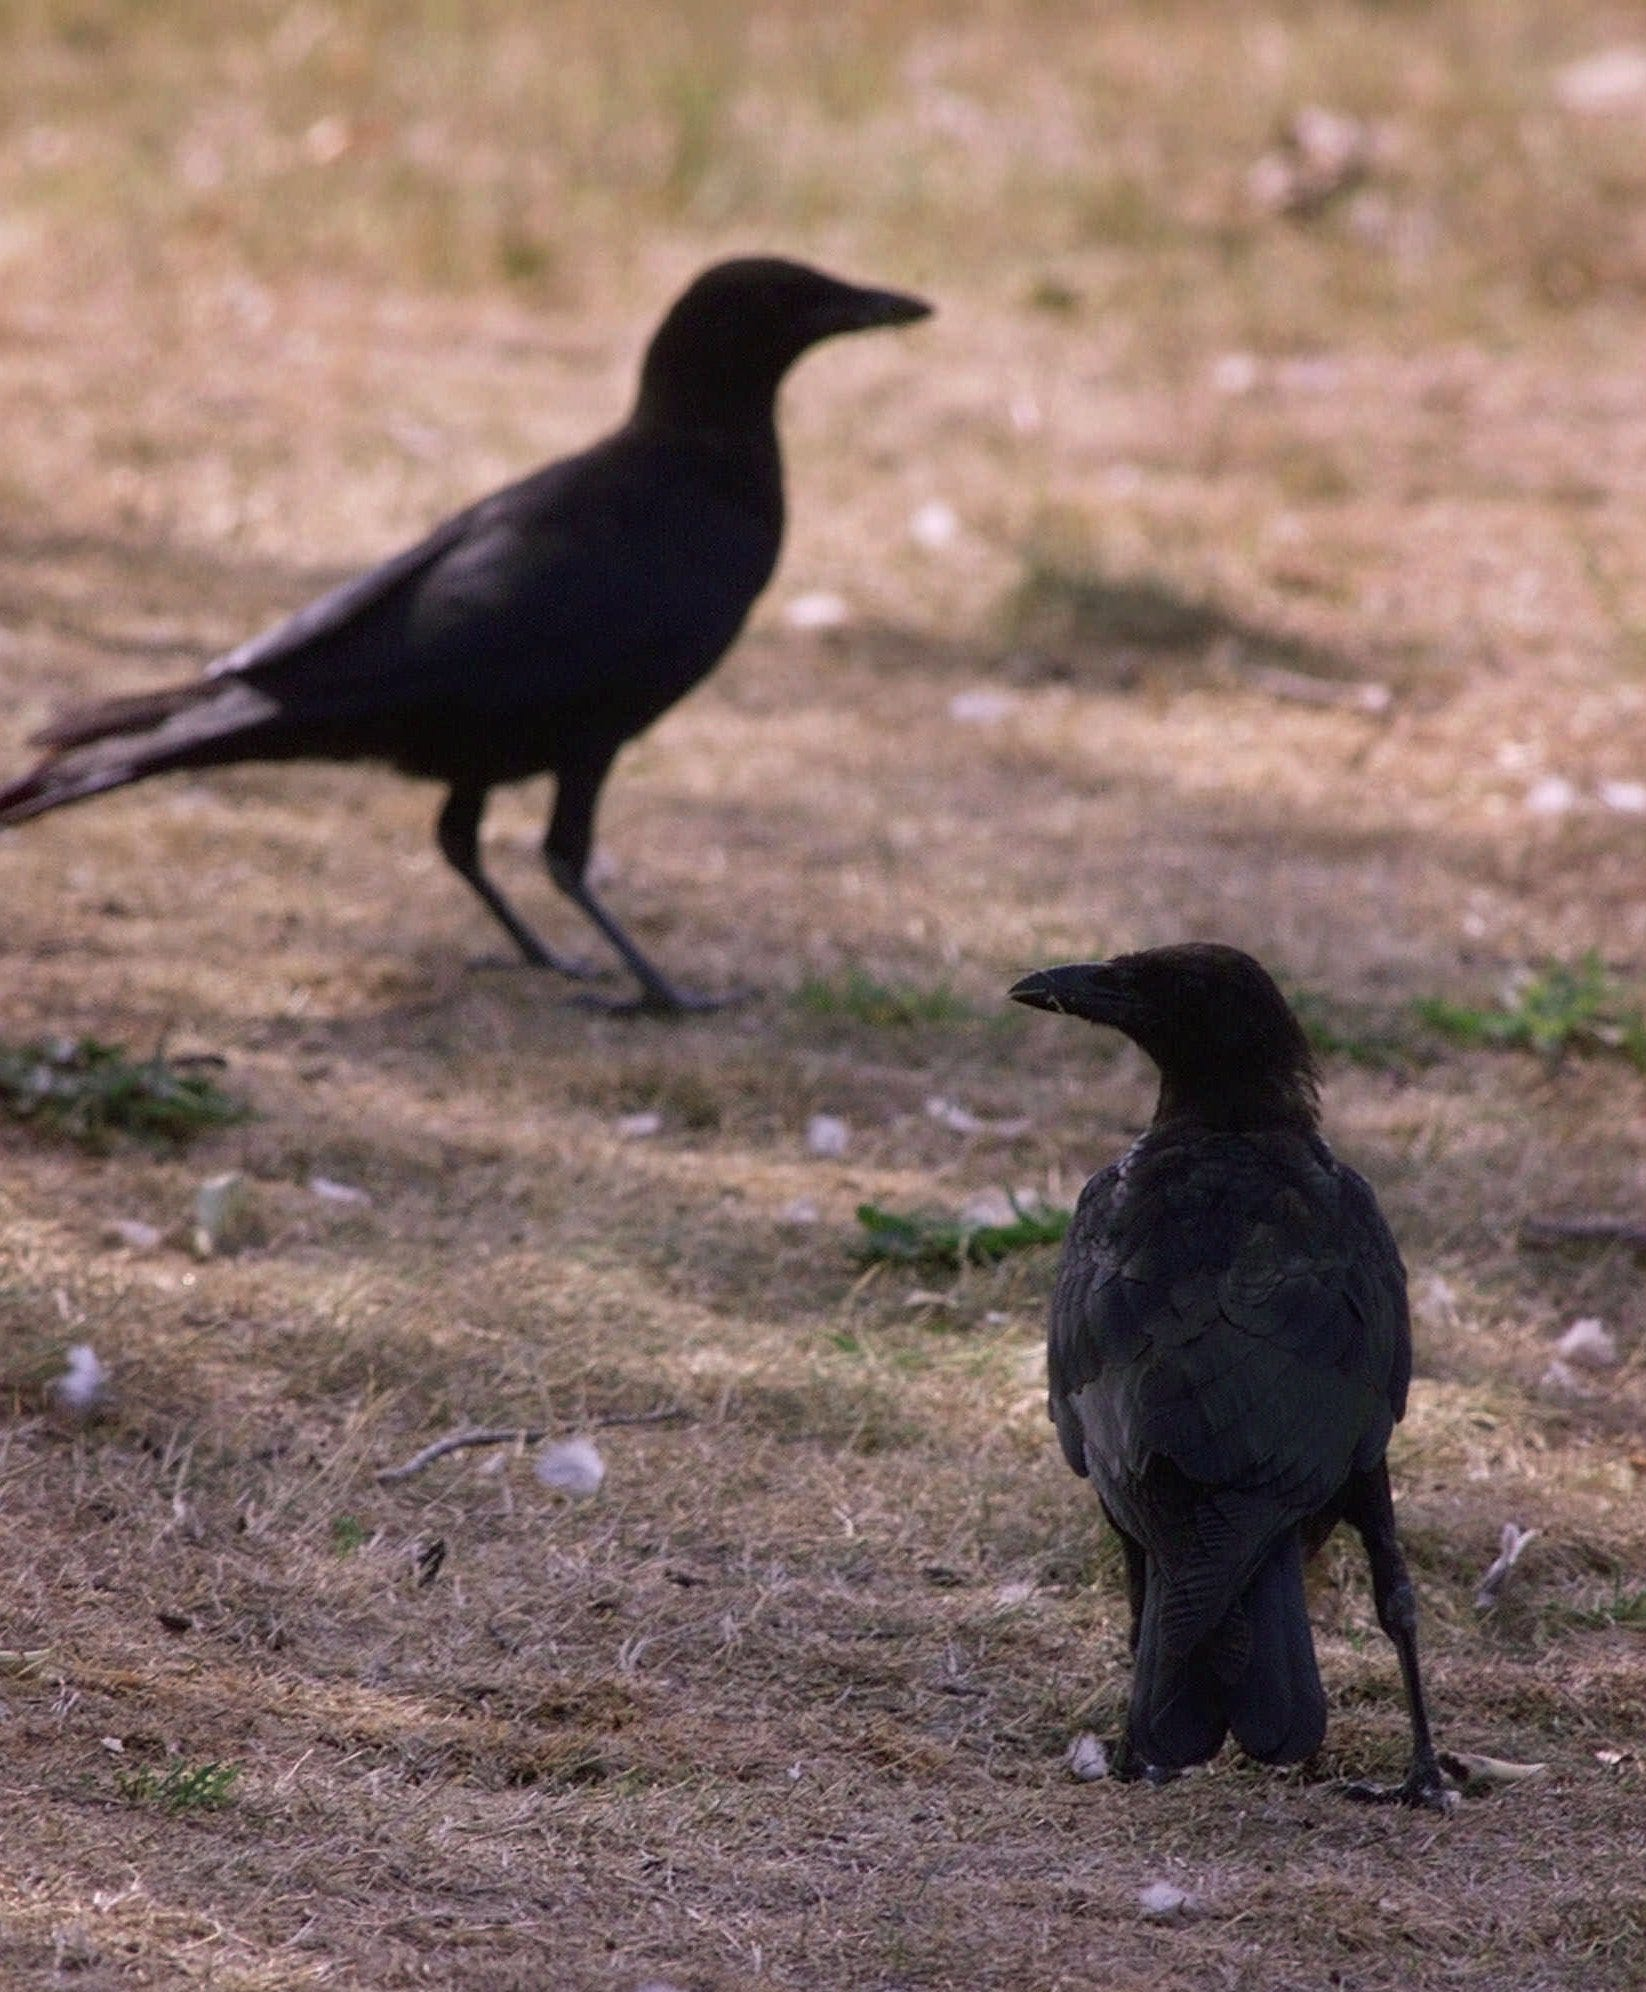 Crows trained to pick up cigarette butts, garbage at French park